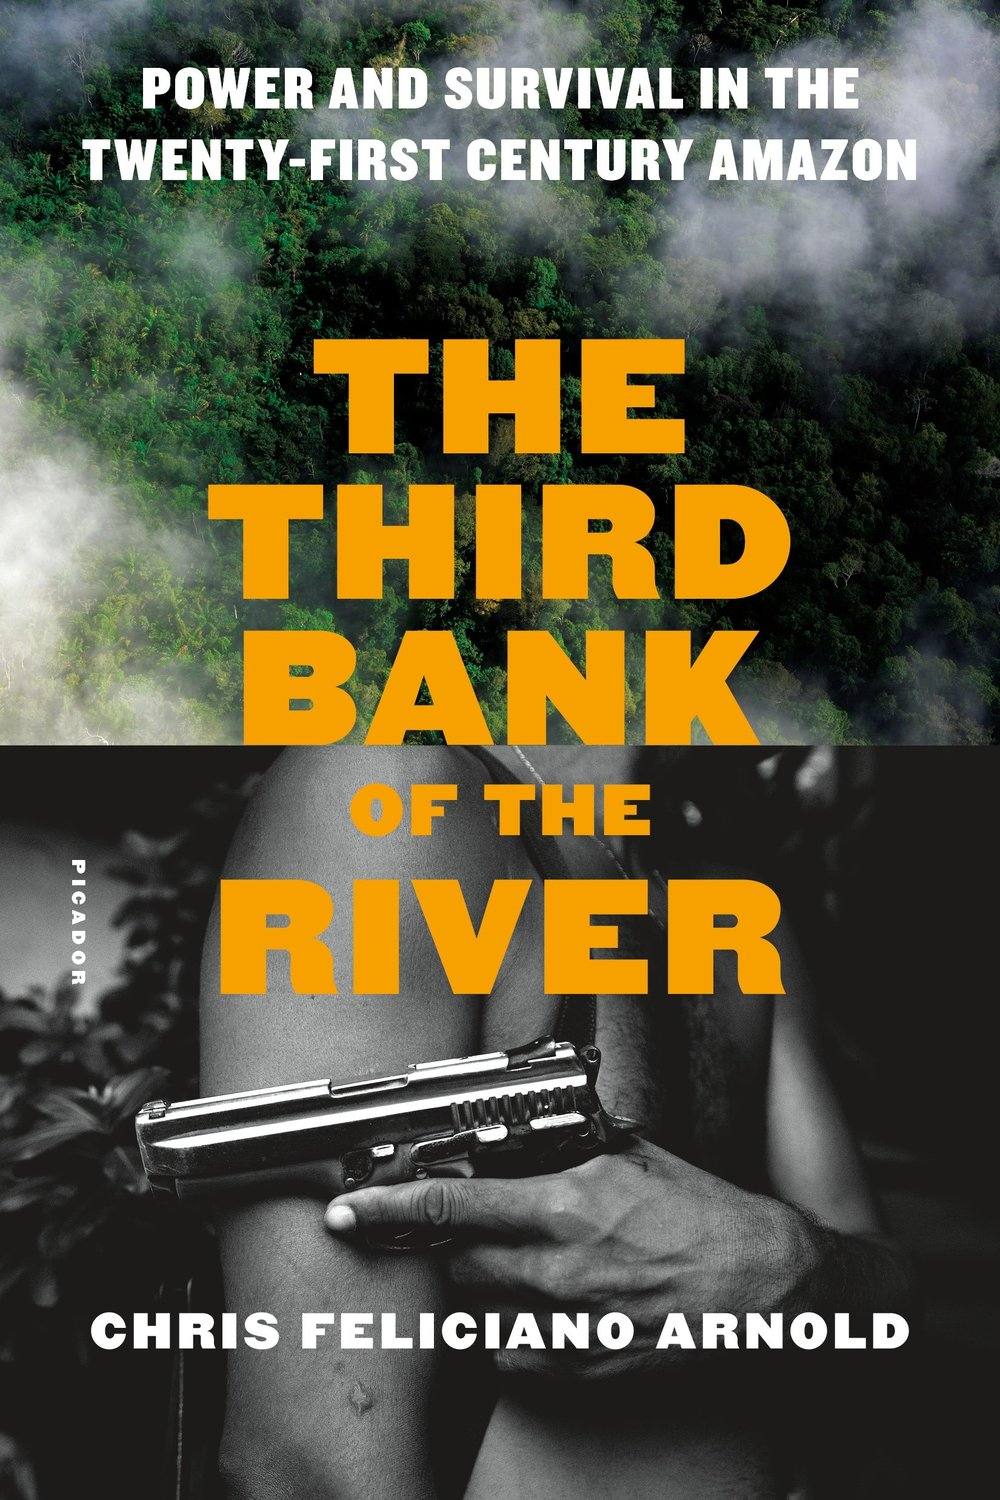 A sweeping look at the war over the Amazon.  - The Third Bank of the River maps the human territory of one of the world's last great frontiers—and a critical battleground for human rights and the future of our planet. Grounded in rigorous first-hand reporting and in-depth research, this is a portrait of Brazil and the Amazon that is complex, bloody, and often tragic.